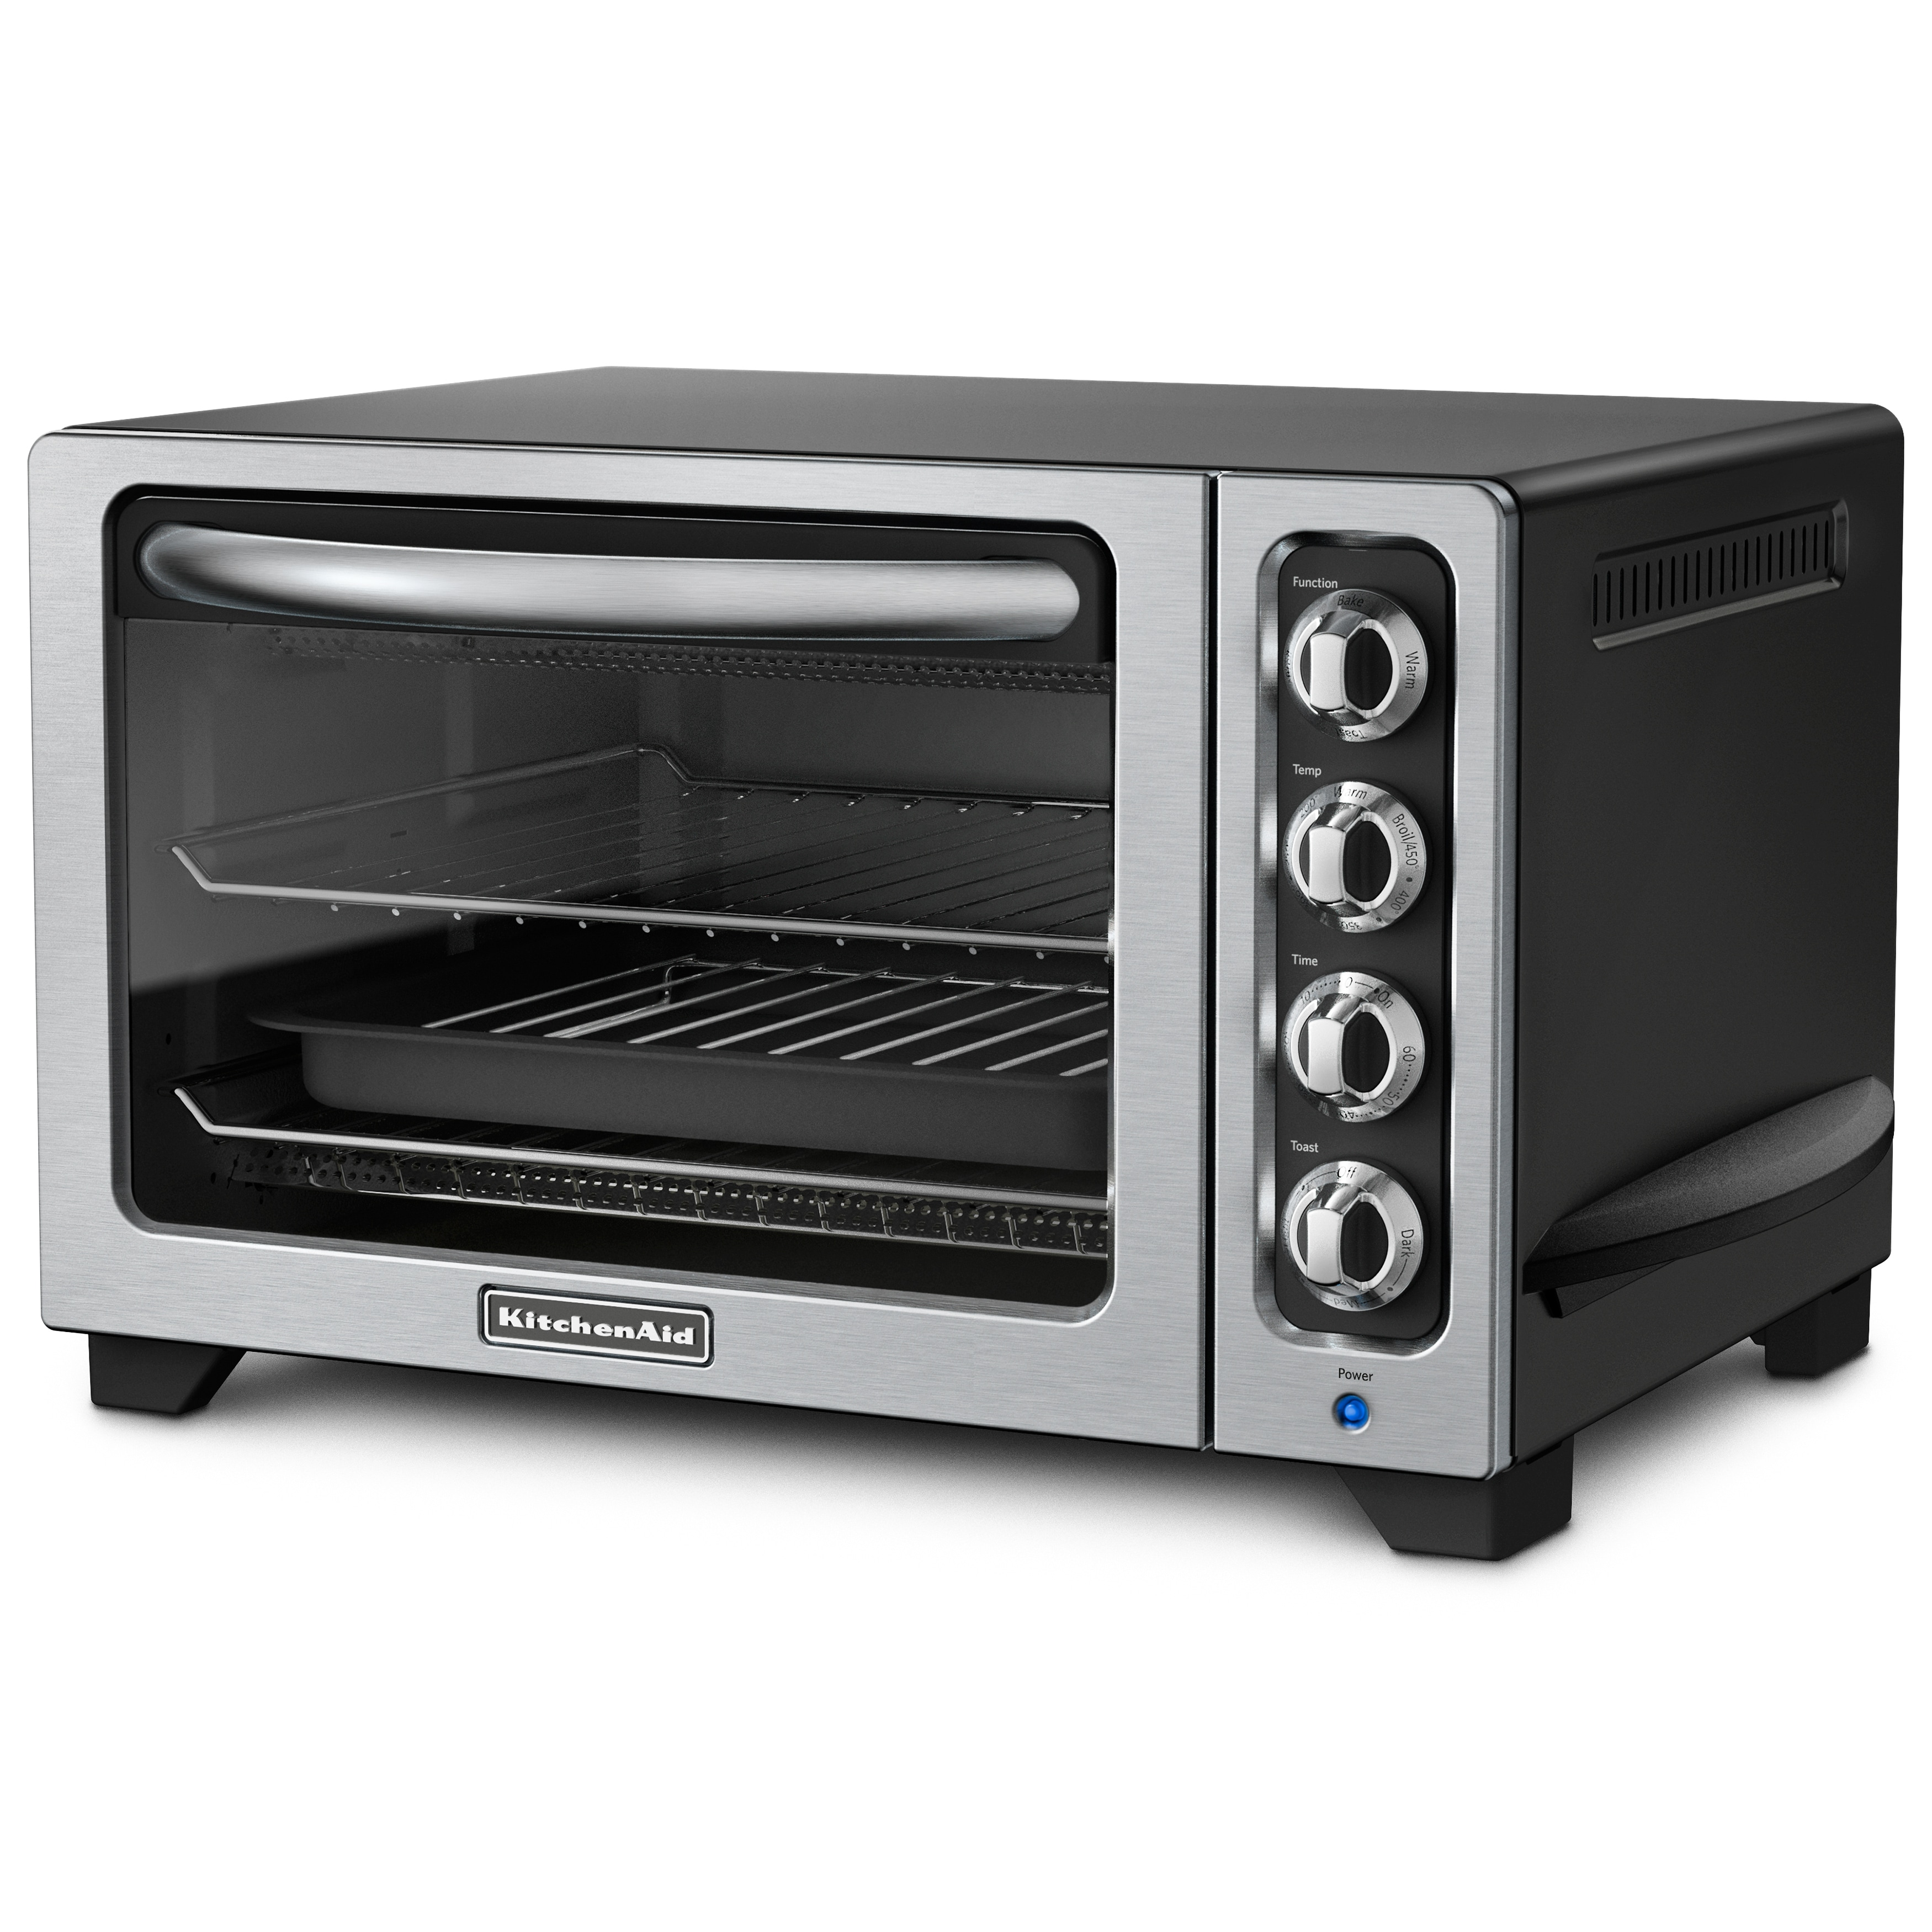 KitchenAid RKCO222OB Onyx Black 12-inch Countertop Oven (Refurbished) at Sears.com